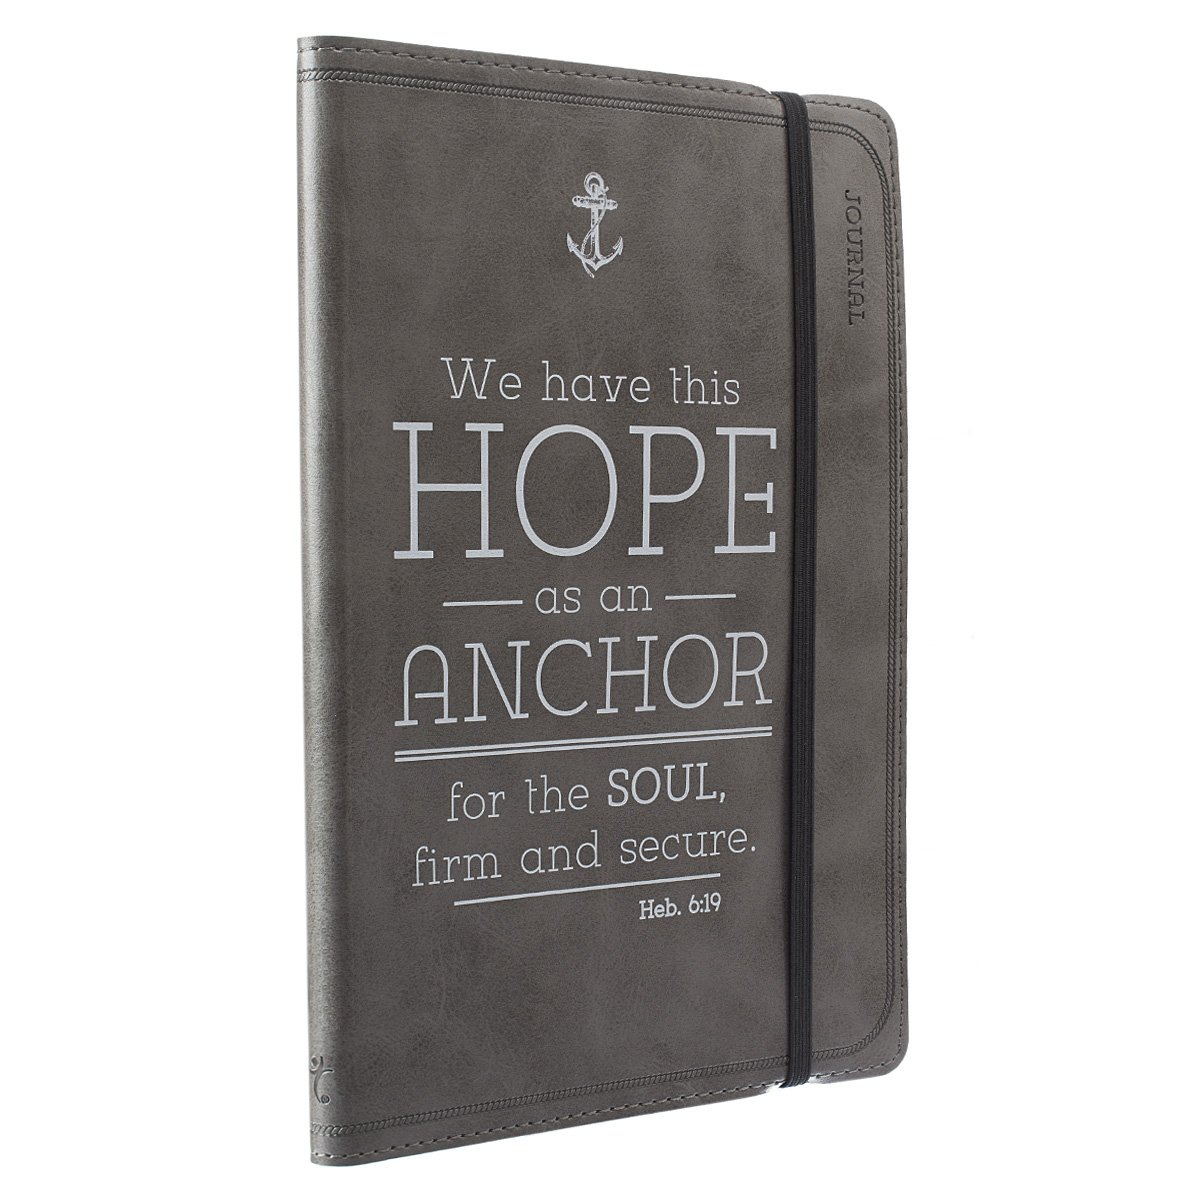 Pewter Anchor Flexcover Journal Notebook product image